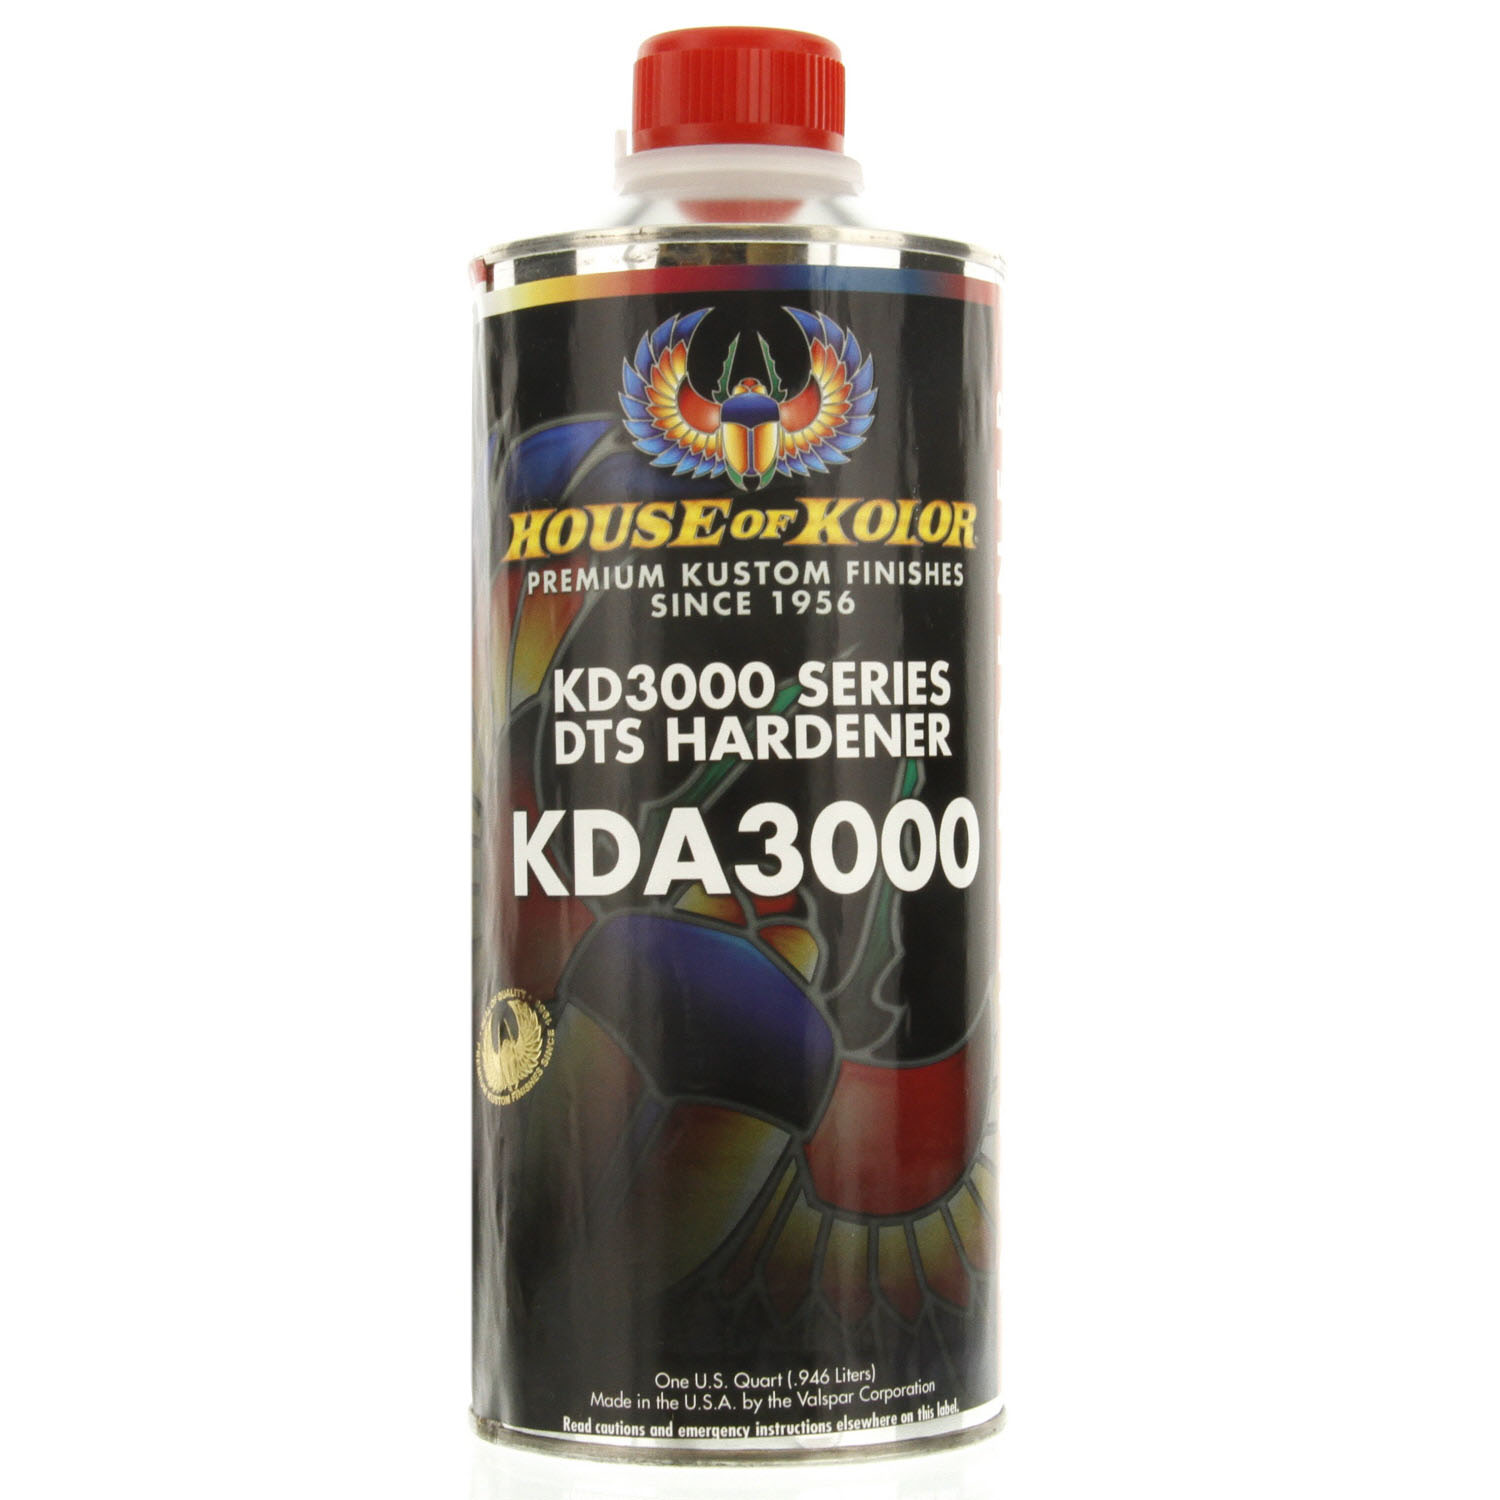 KDA3000 DTS Hardener 1US Quart